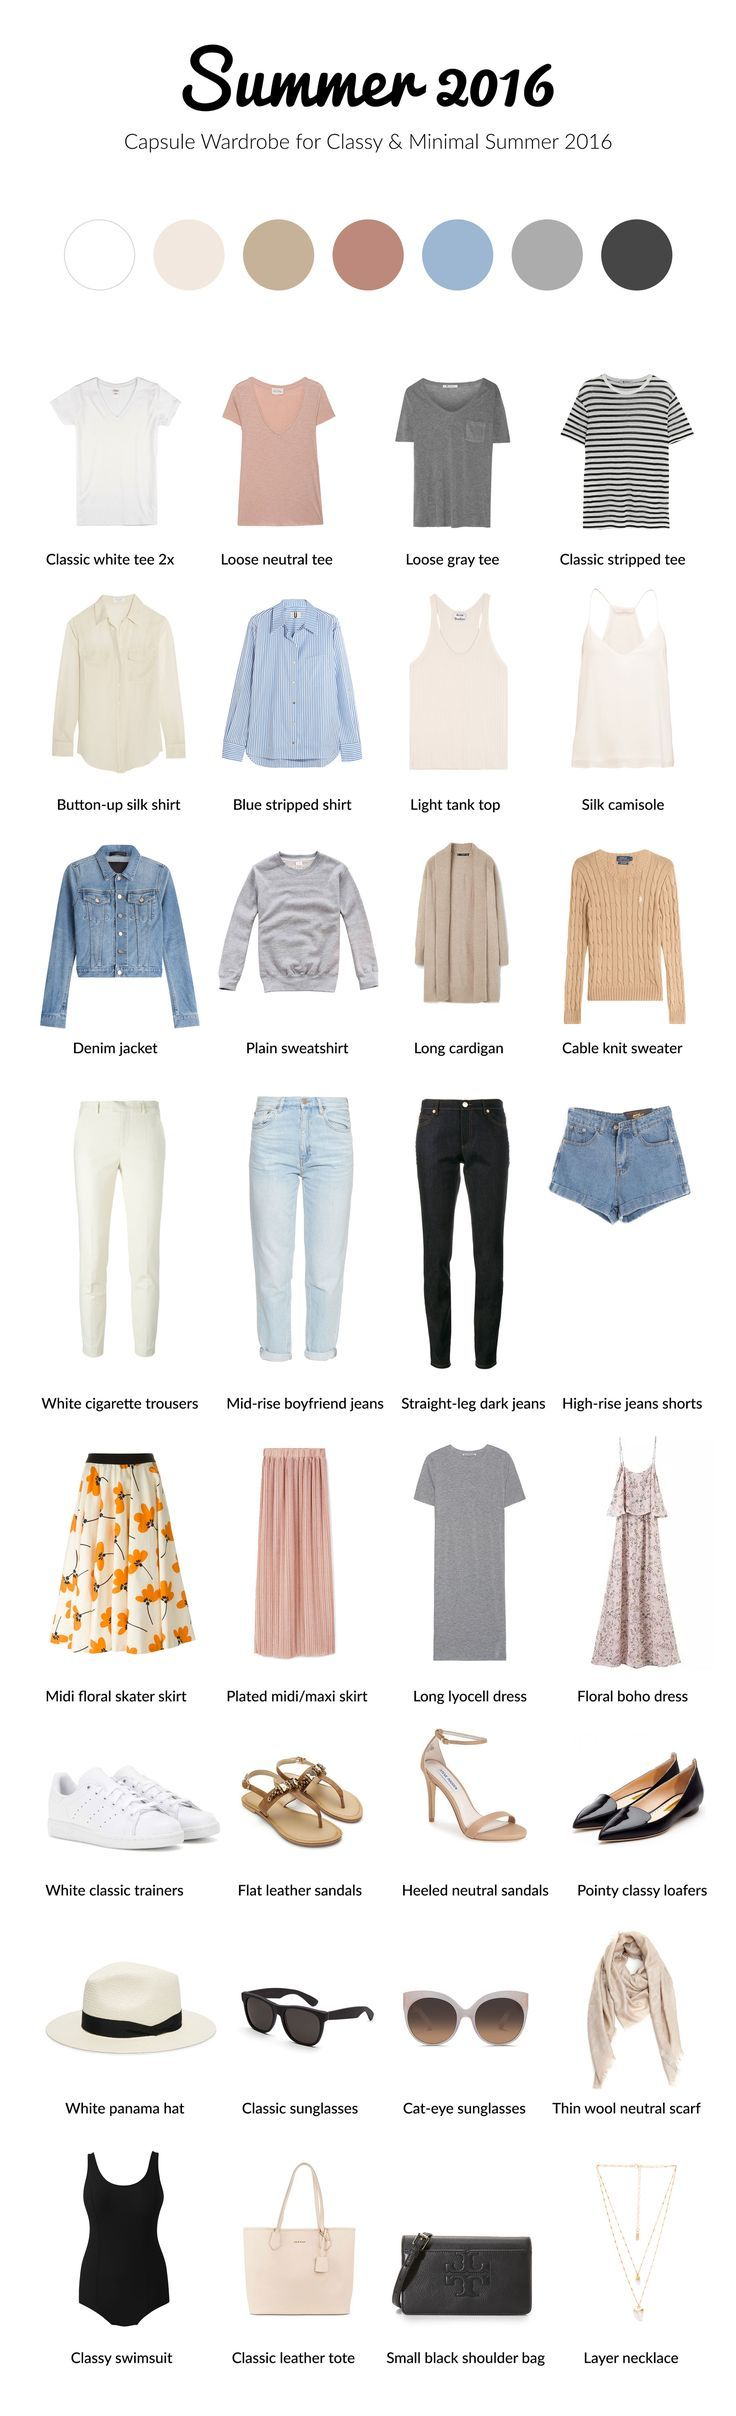 Summer 2016 capsule wardrobe for classy and minimal. #capsule